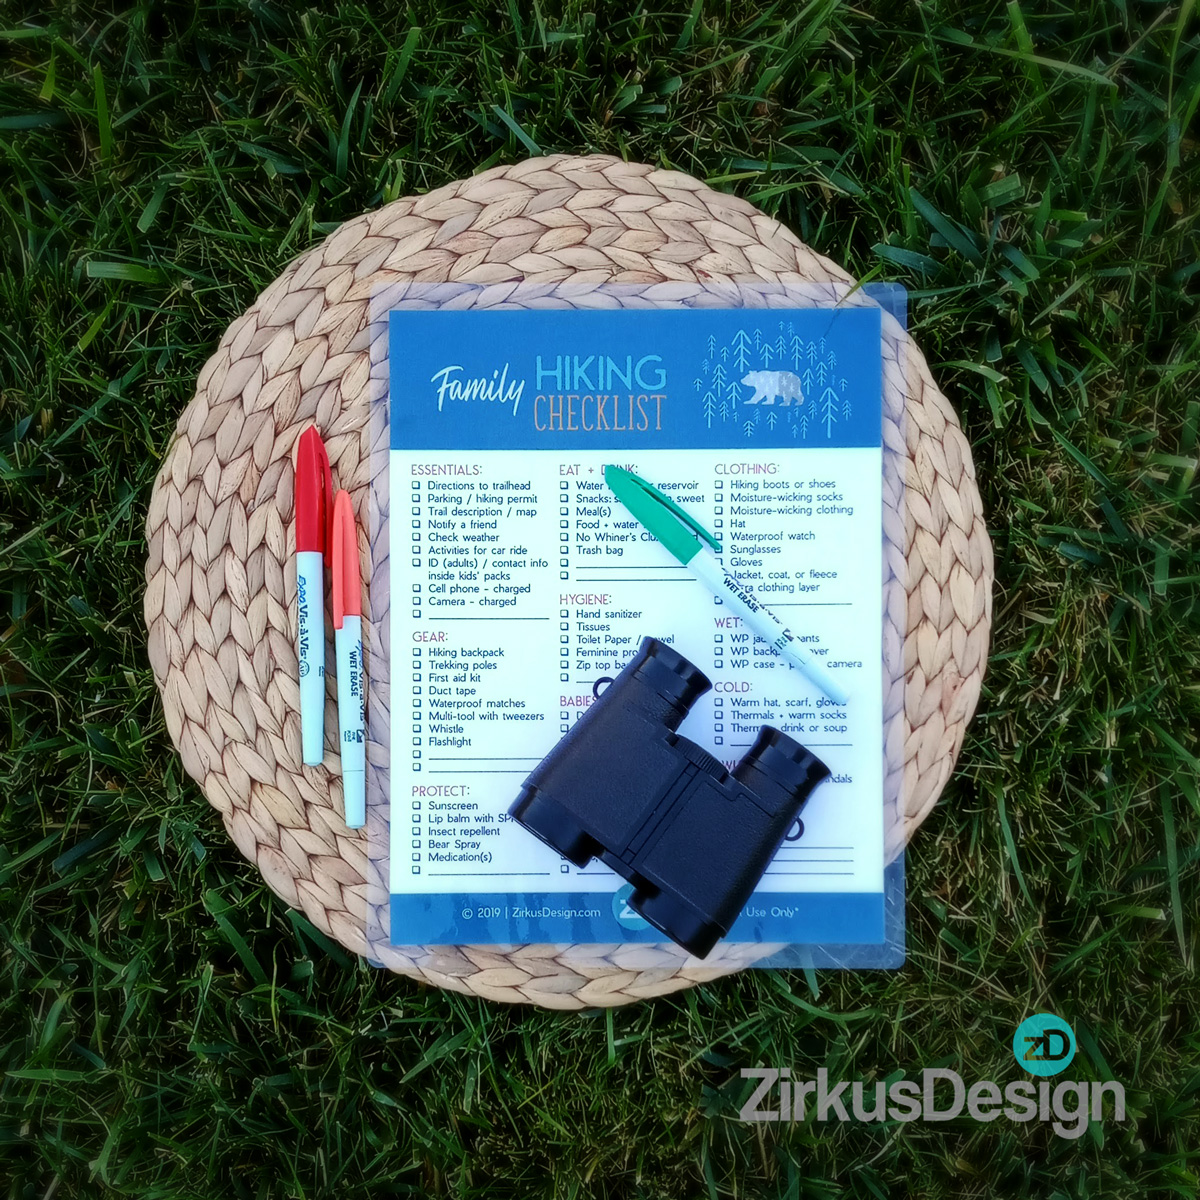 What to Pack for a Family Day Hike - FREE Printable Checklist! - ZirkusDesign.comto Pack for a Family Day Hike - FREE Printable Checklist! - ZirkusDesign.com - Hiking Family of 5